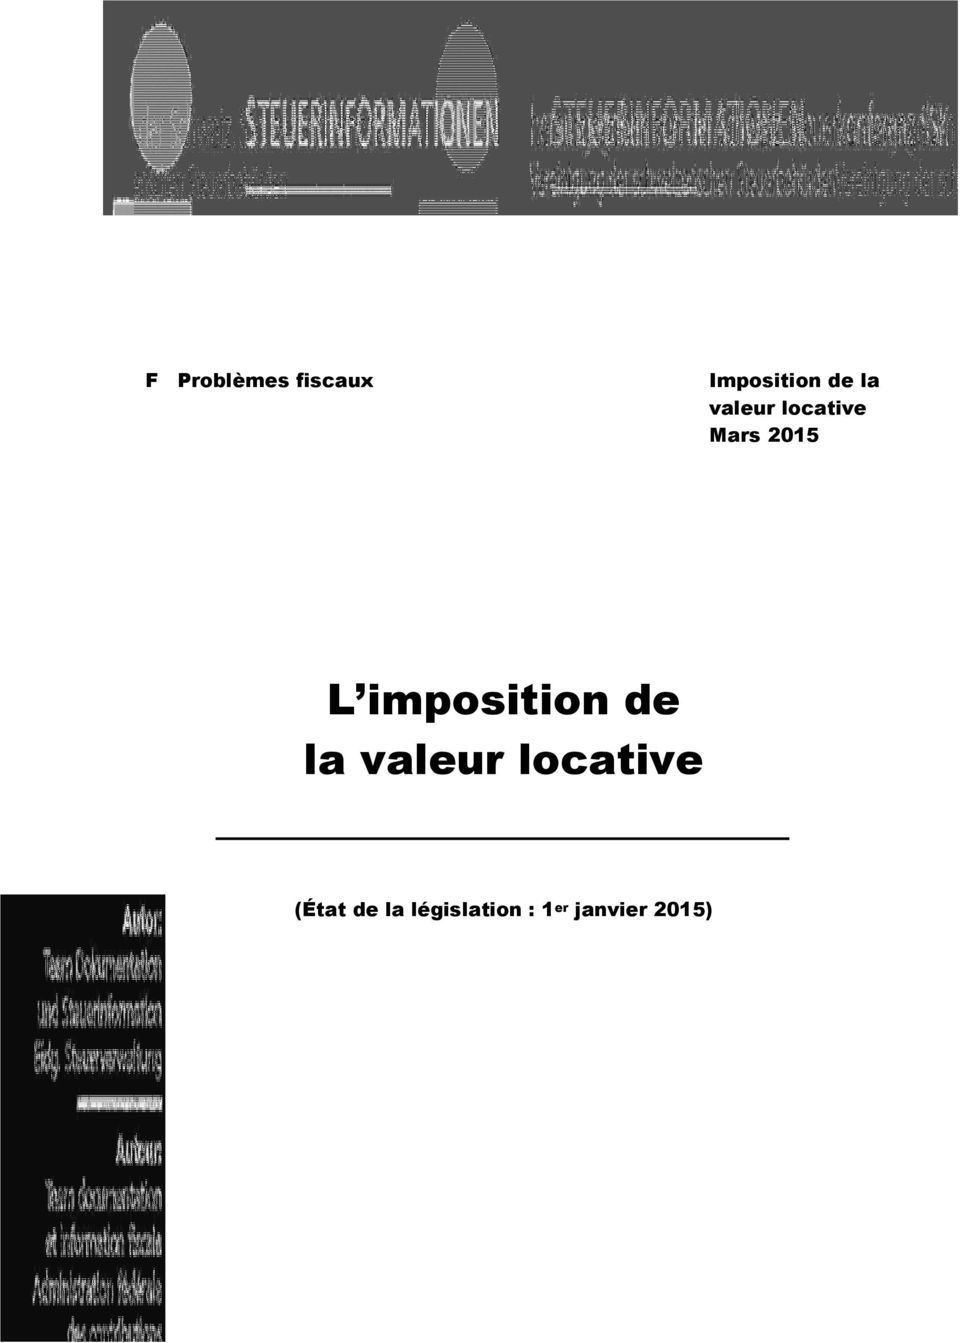 imposition de la valeur locative